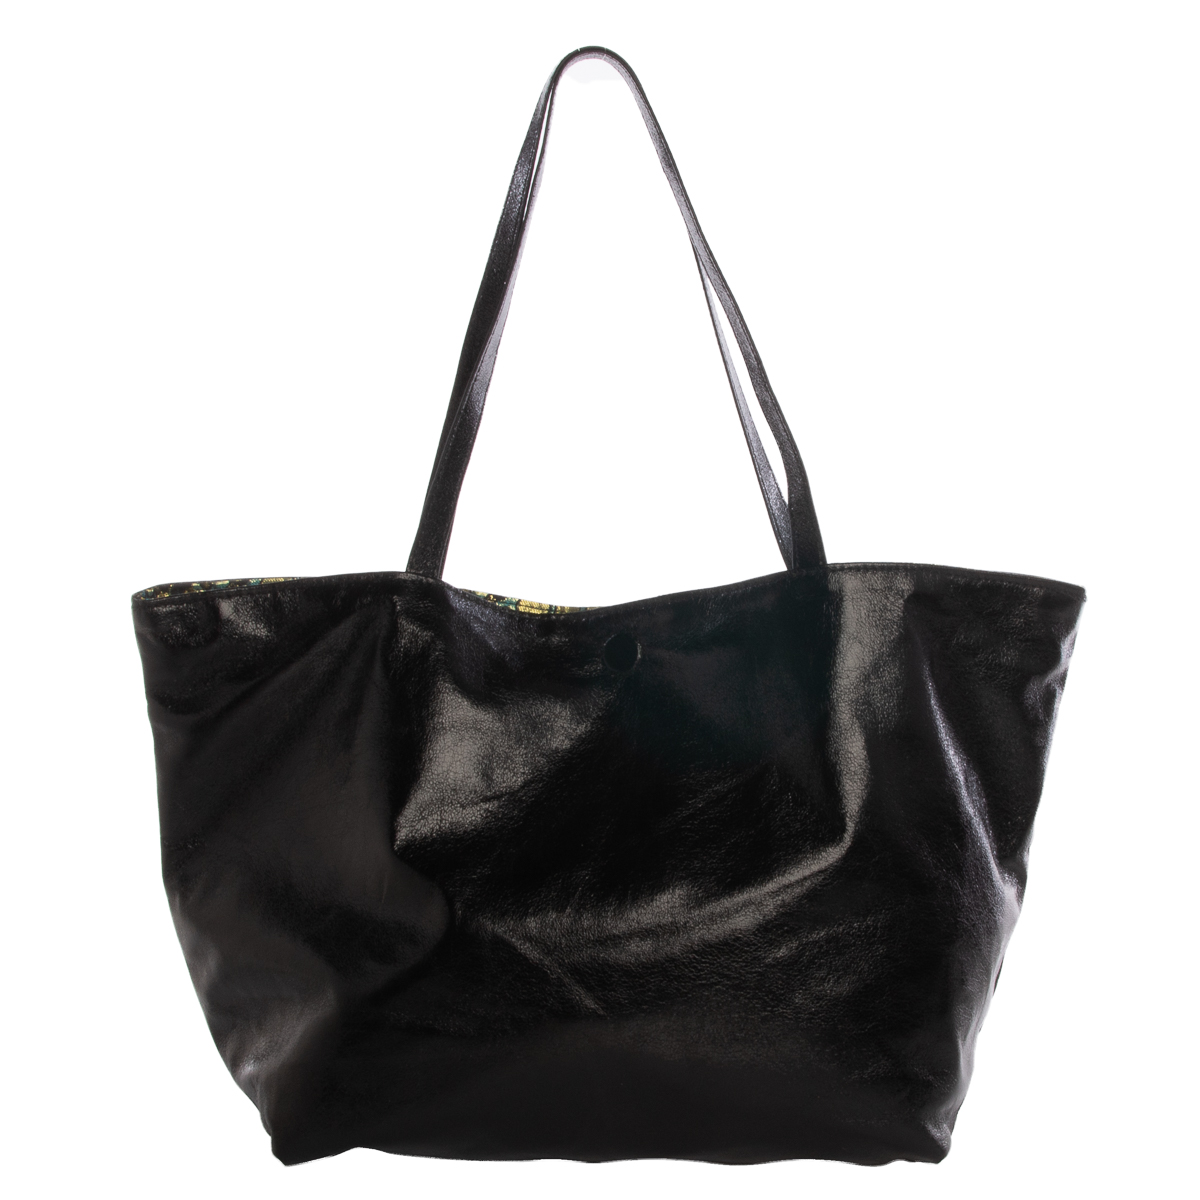 Steve-Madden-Handbags-For-Women-Tote-Bag-Reversible-with-Zip-Clutch-Purse thumbnail 7